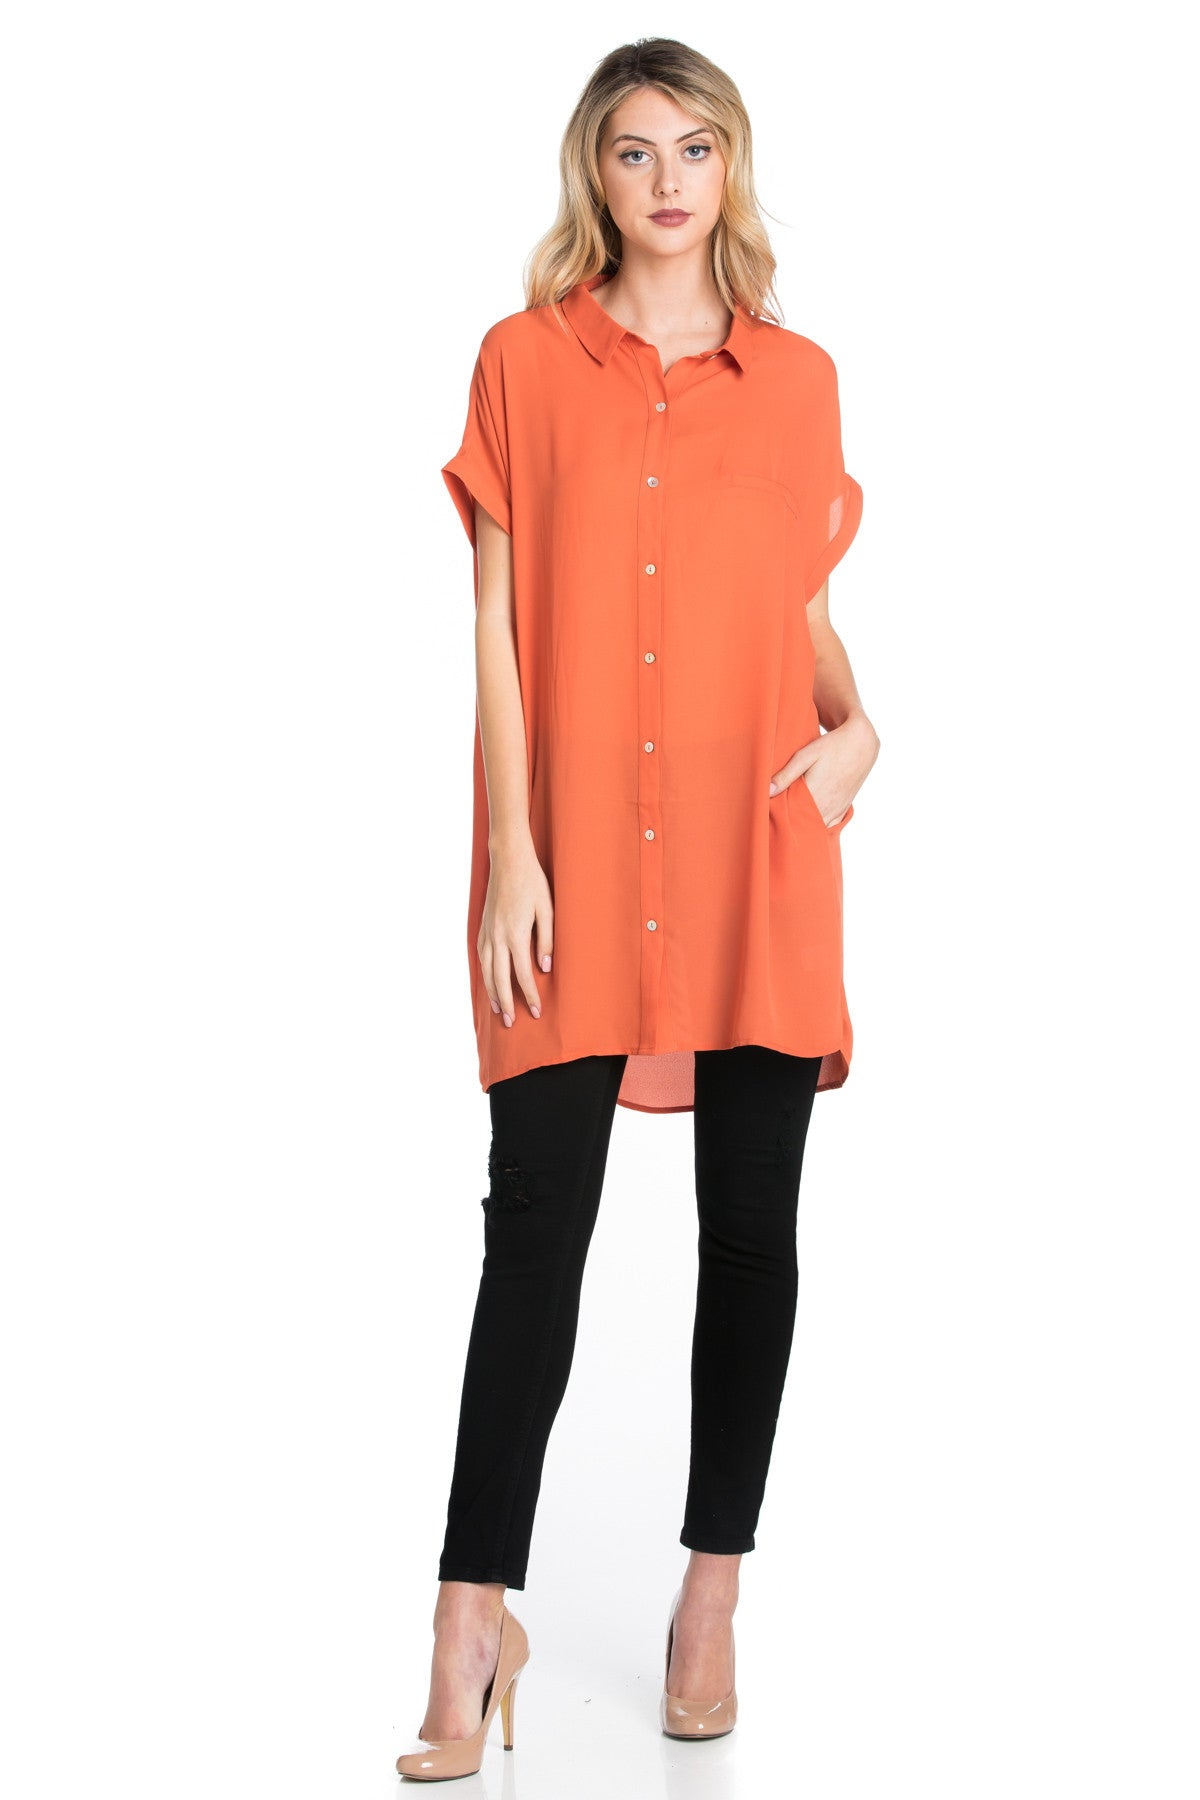 Short Sleeve Longline Button Down Chiffon Top in Coral - Tops - My Yuccie - 7